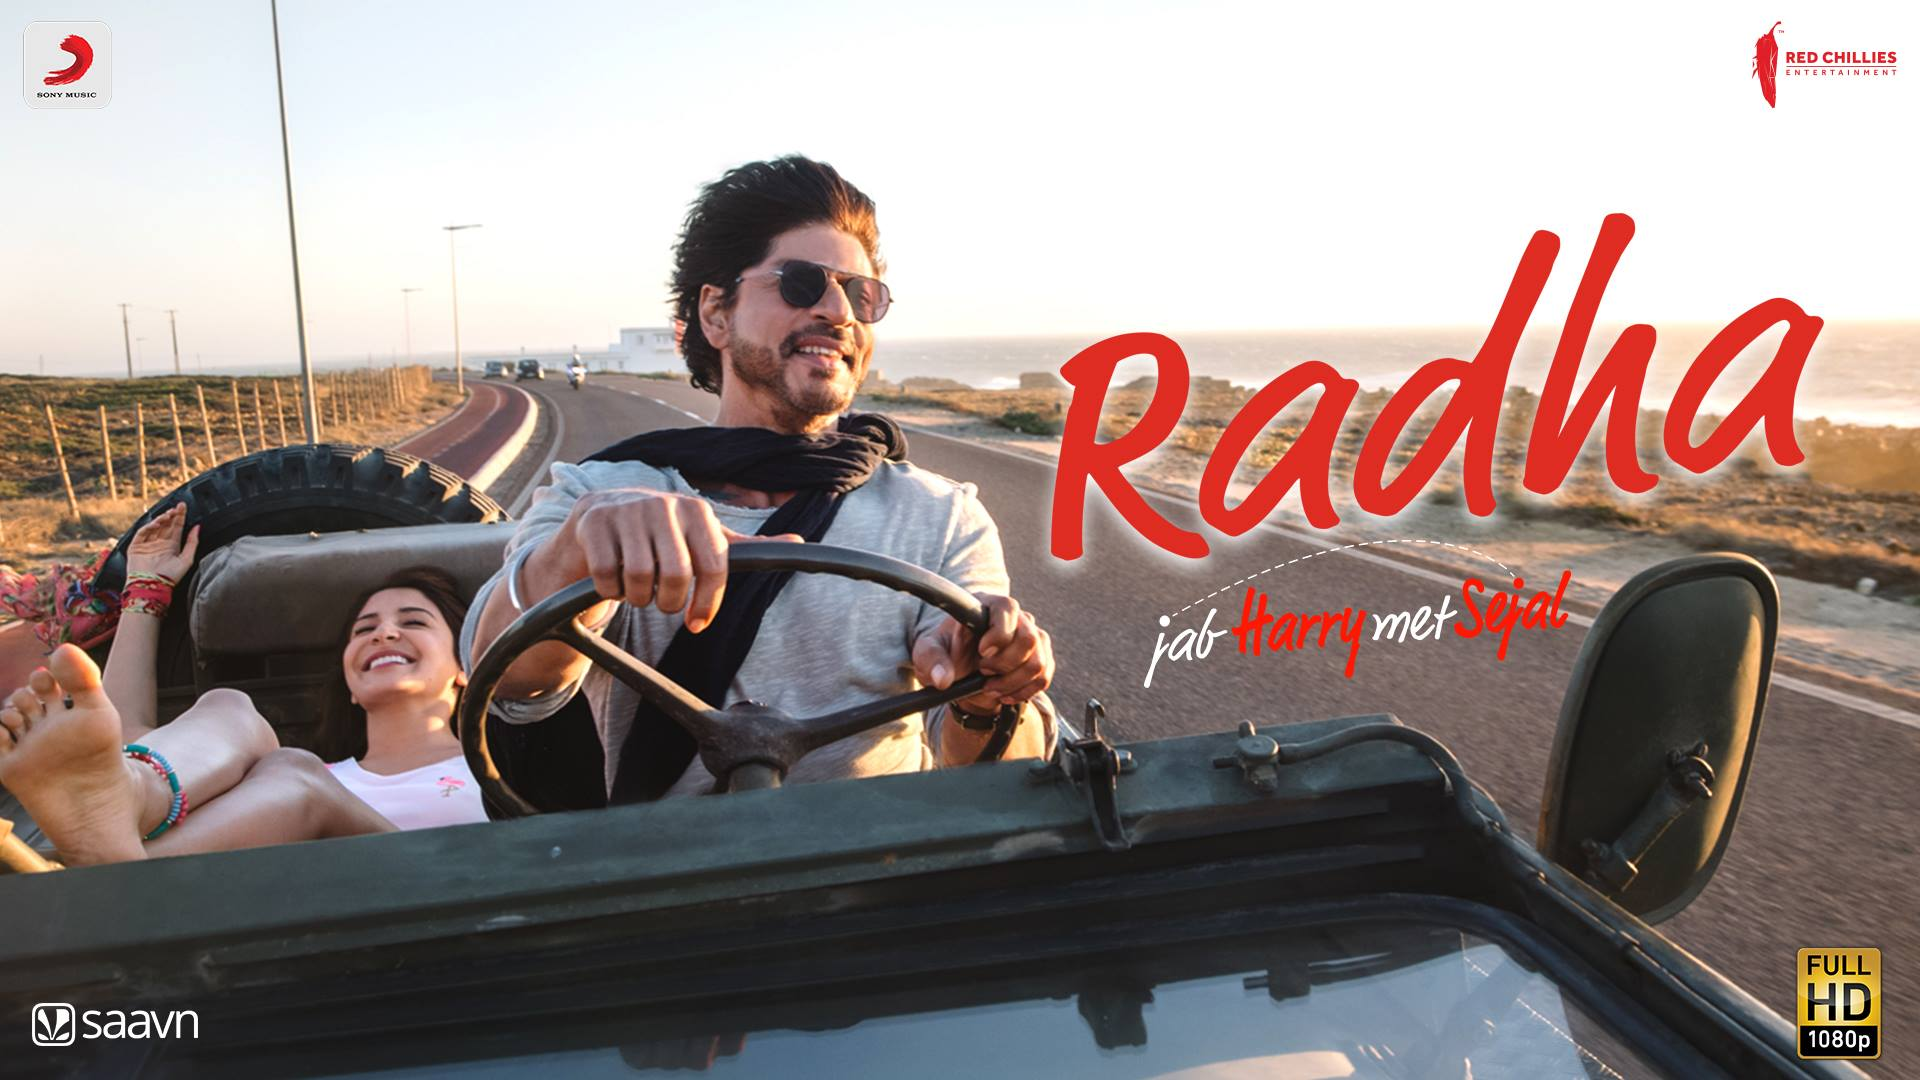 Sejal! Time's up. Bata de will you be my Radha?   Anushka Sharma Red Chillies Entertainment Imtiaz Ali Sony Music India Pritam #RadhaOutNow